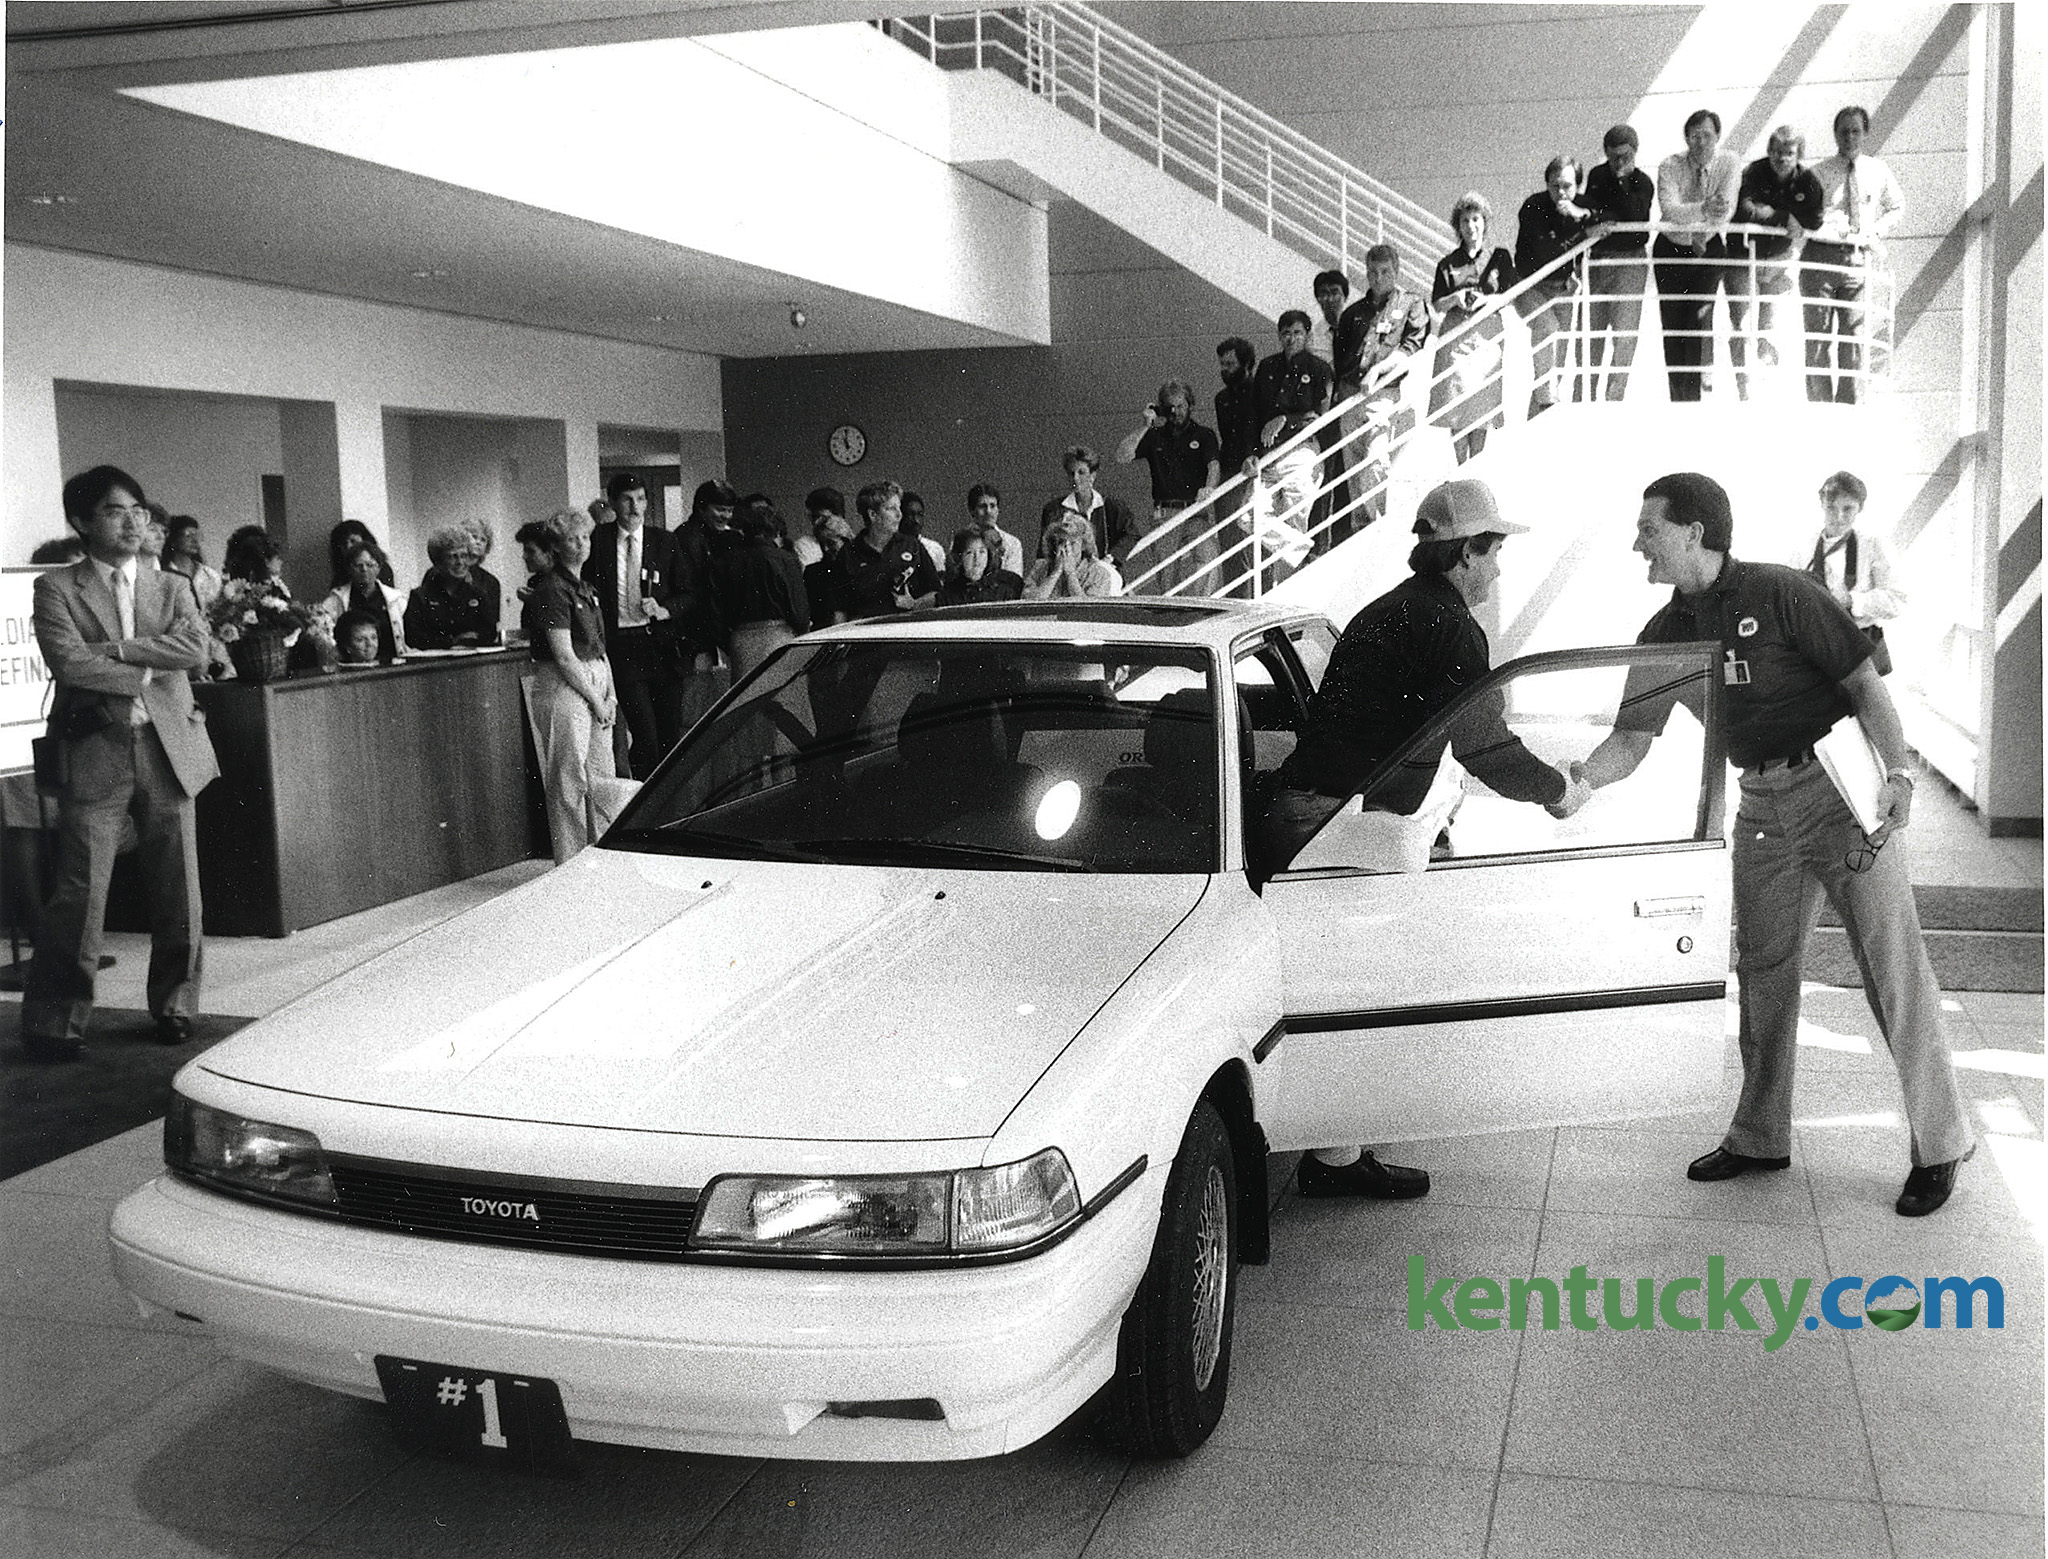 The First Toyota Camry Produced At The Toyota Motor Manufacturing, Kentucky,  Inc. Plant